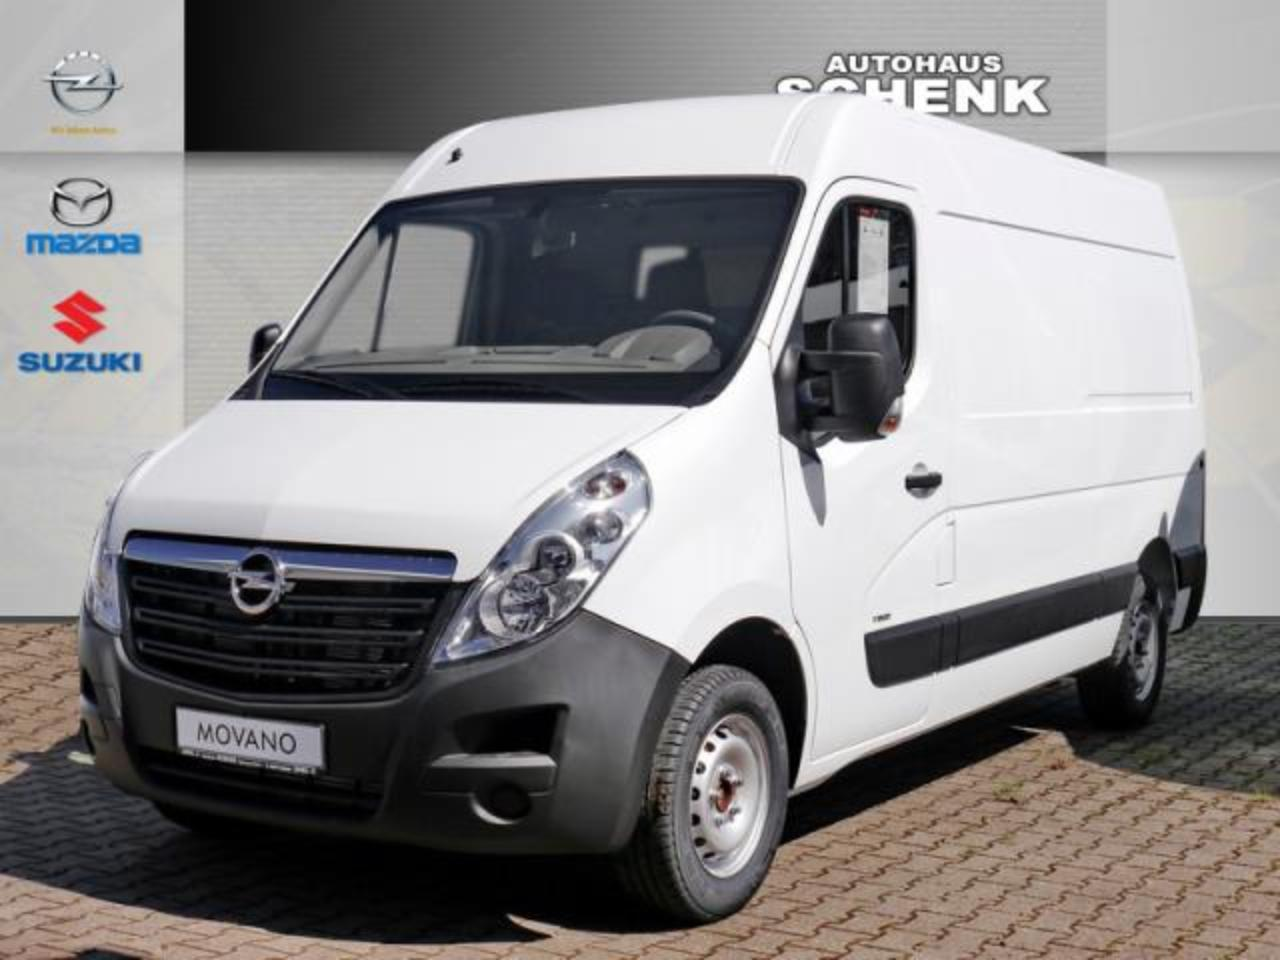 Opel Movano KAWA 2.3 CDTI TURBO 92 KW (125 PS) (MT6) L2H2